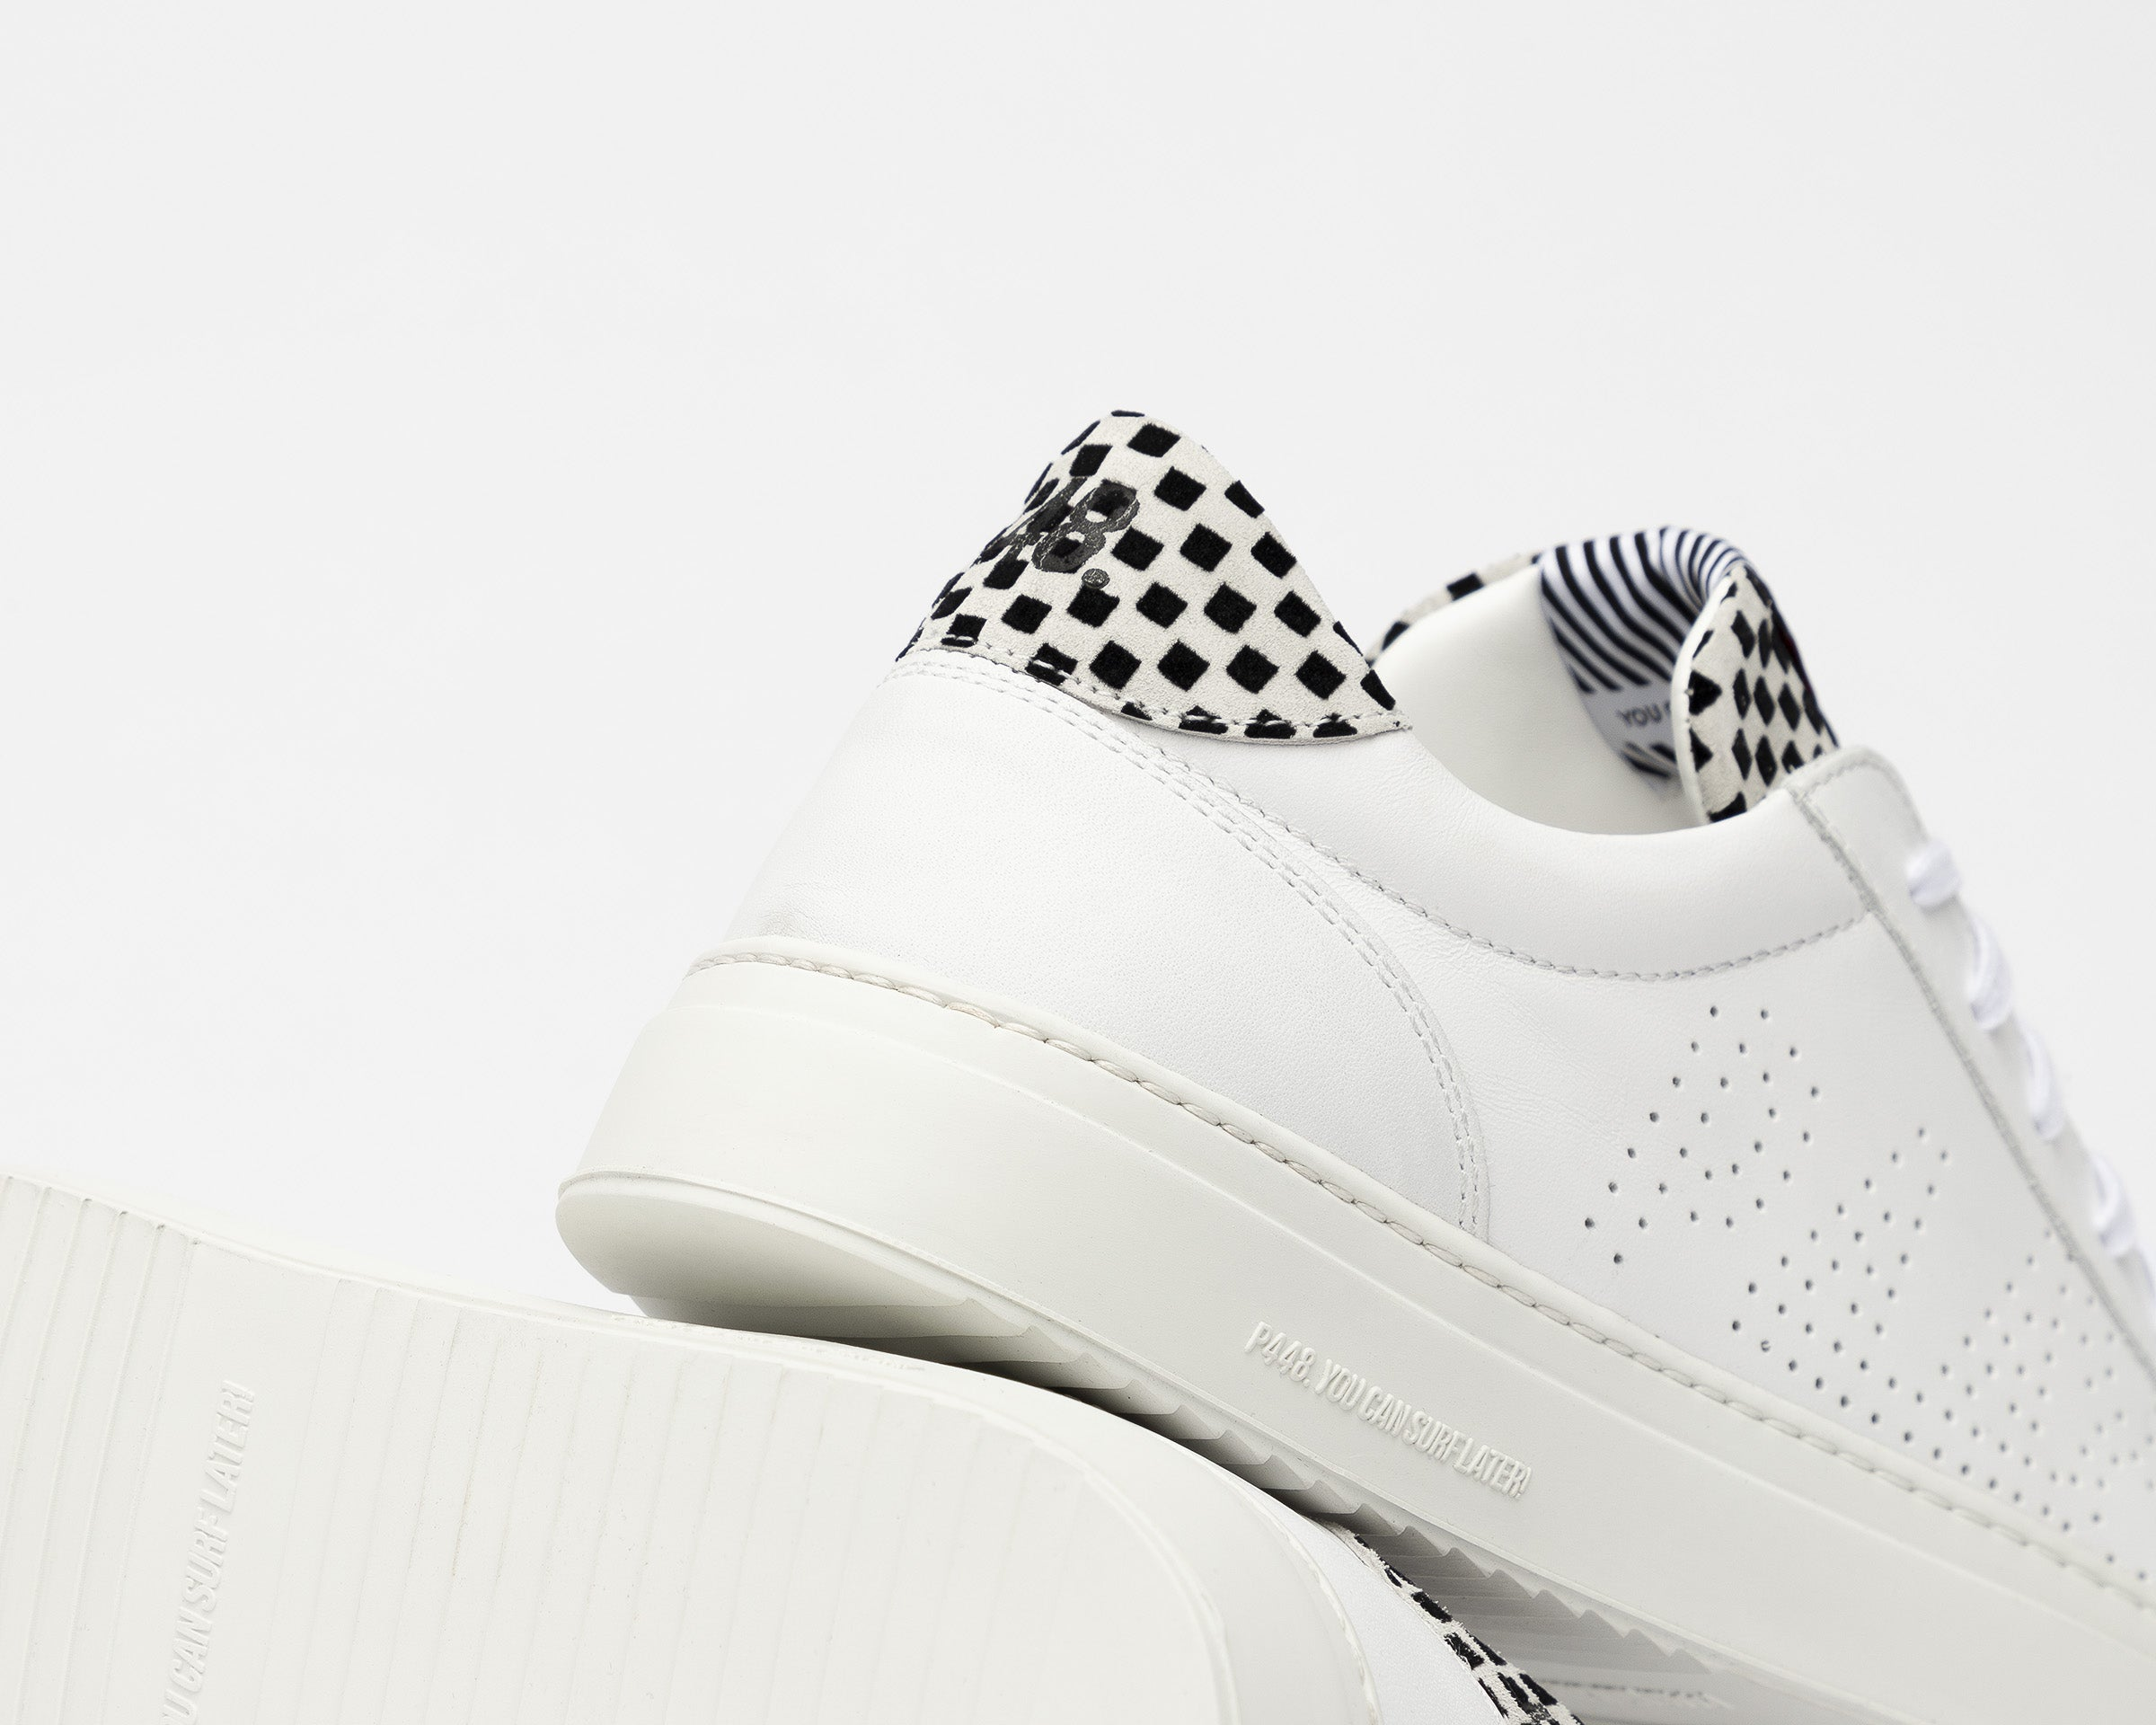 Soho Pull-on Sneaker in White Check - Detail 2